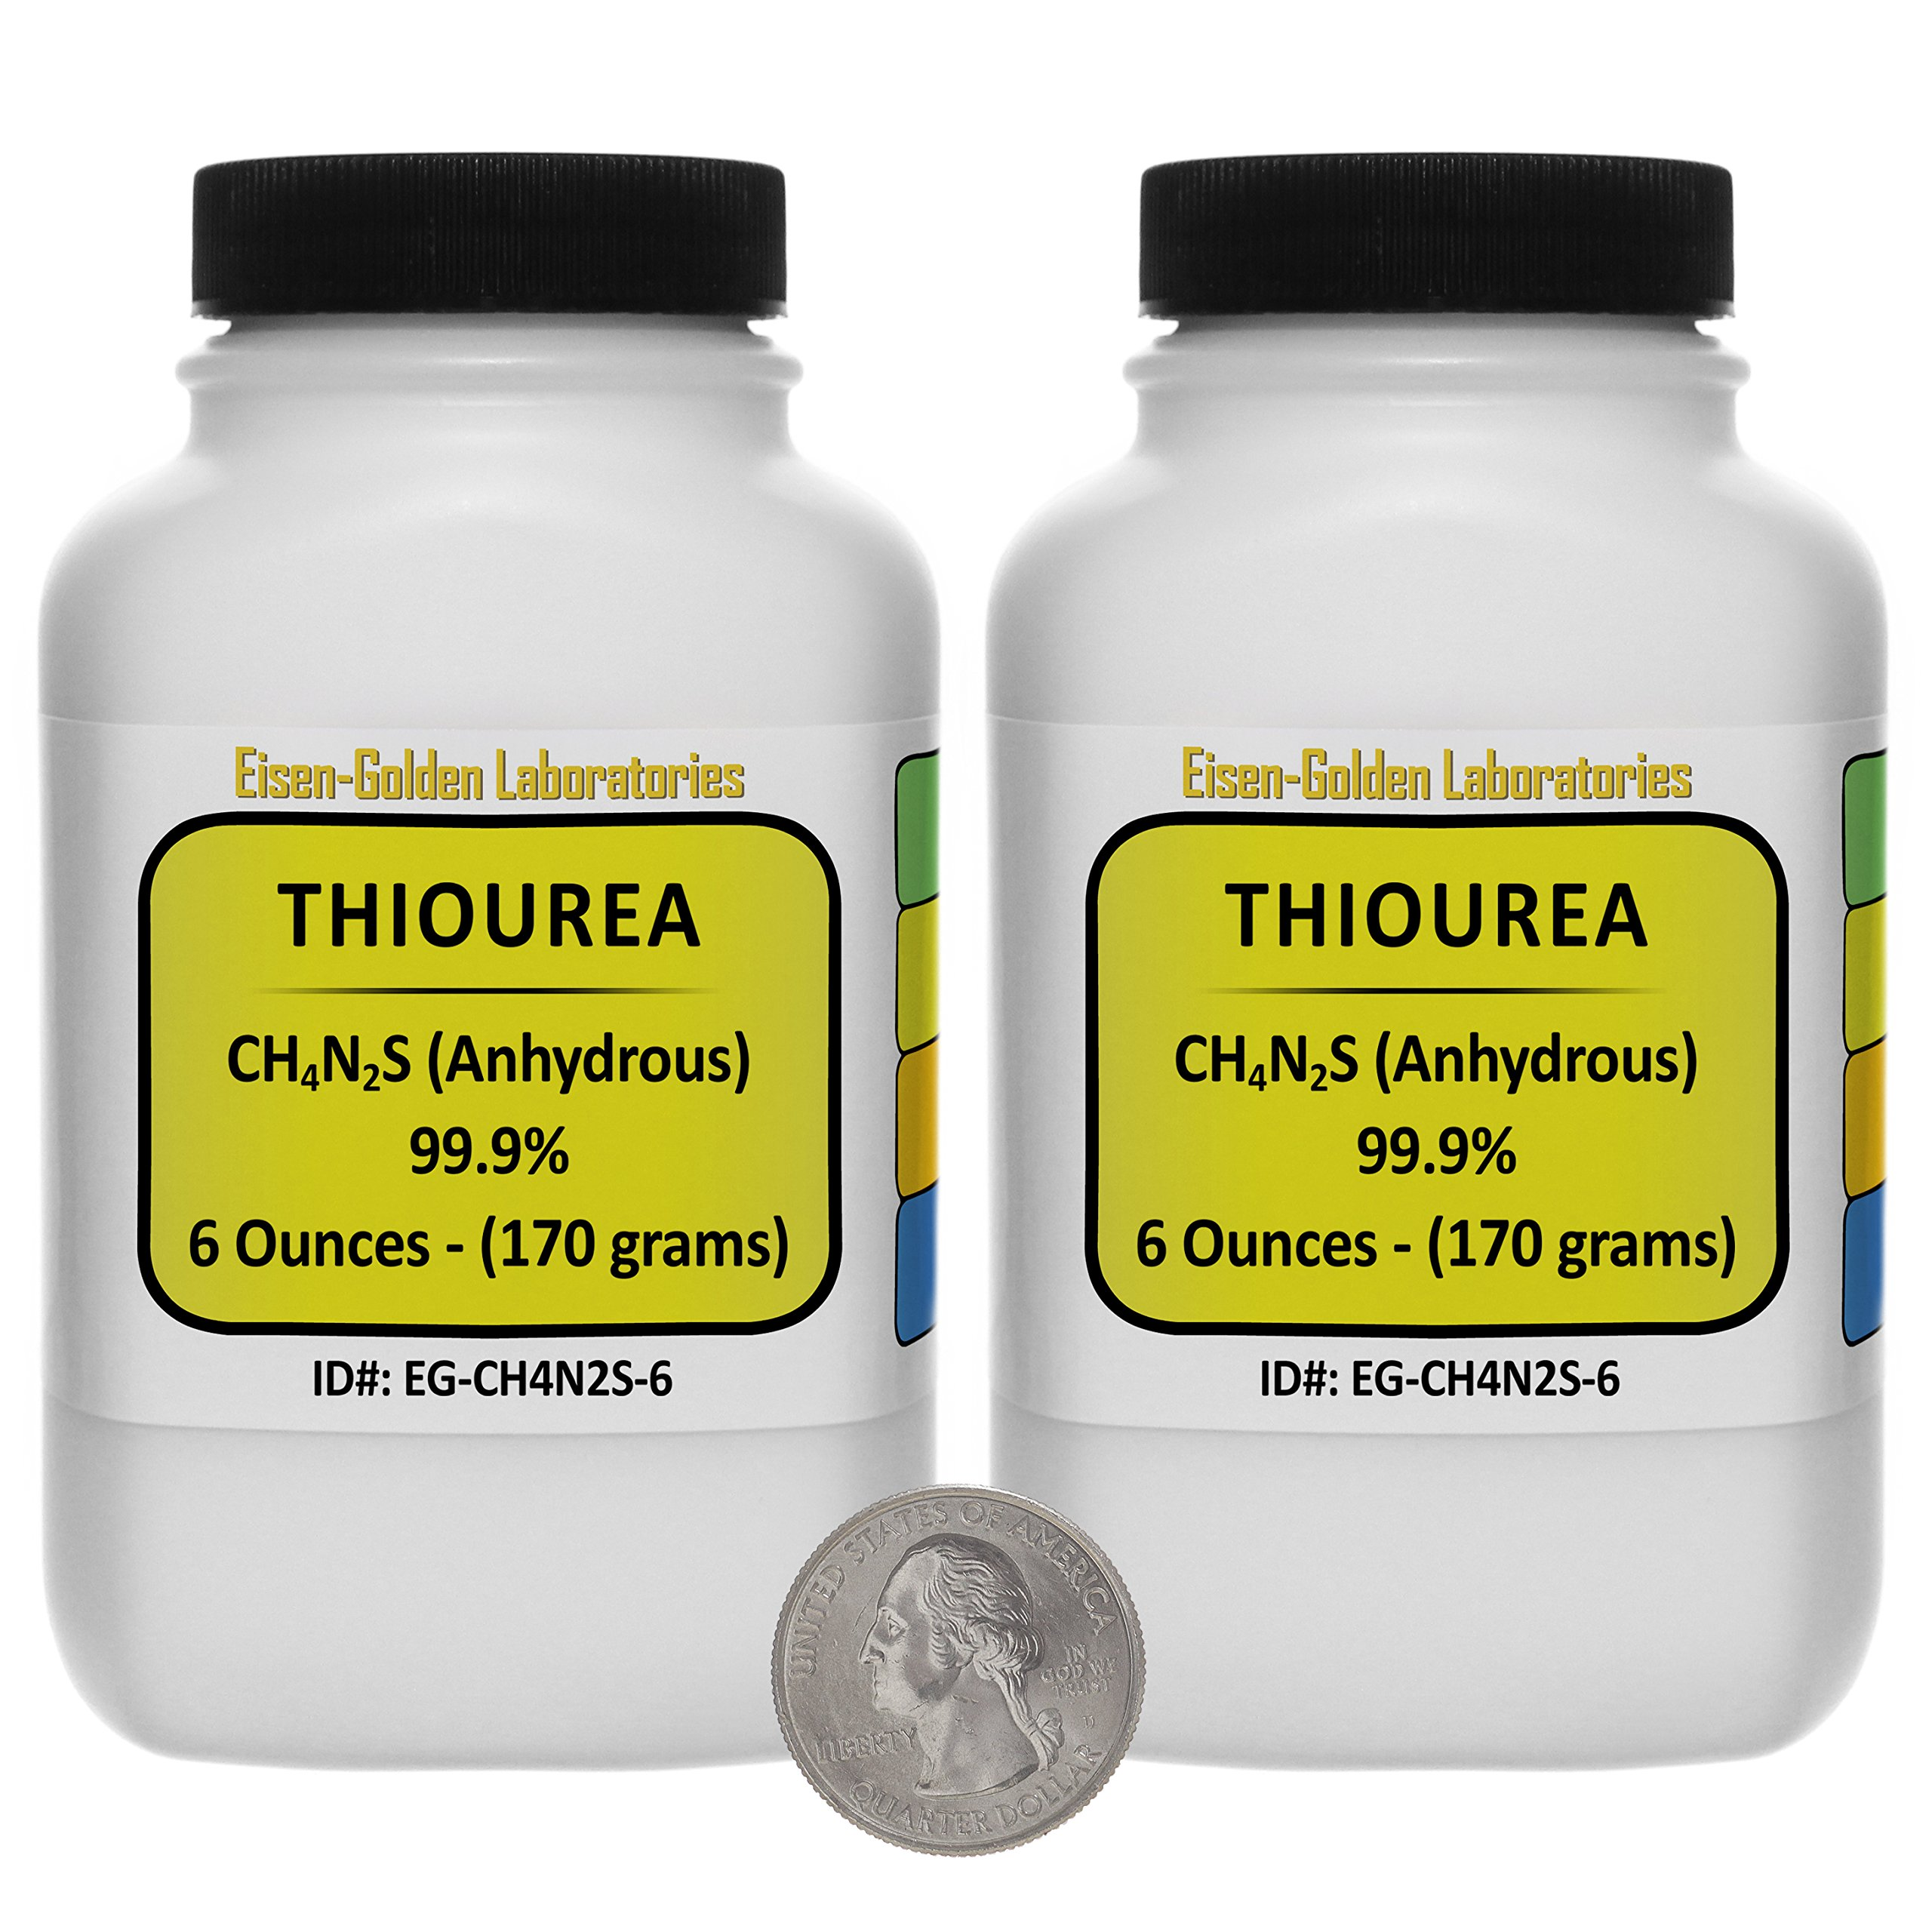 Thiourea [SC(NH2)2] 99.9% ACS Grade Crystals 12 Oz in Two Space-Saver Bottles USA by Eisen-Golden Laboratories